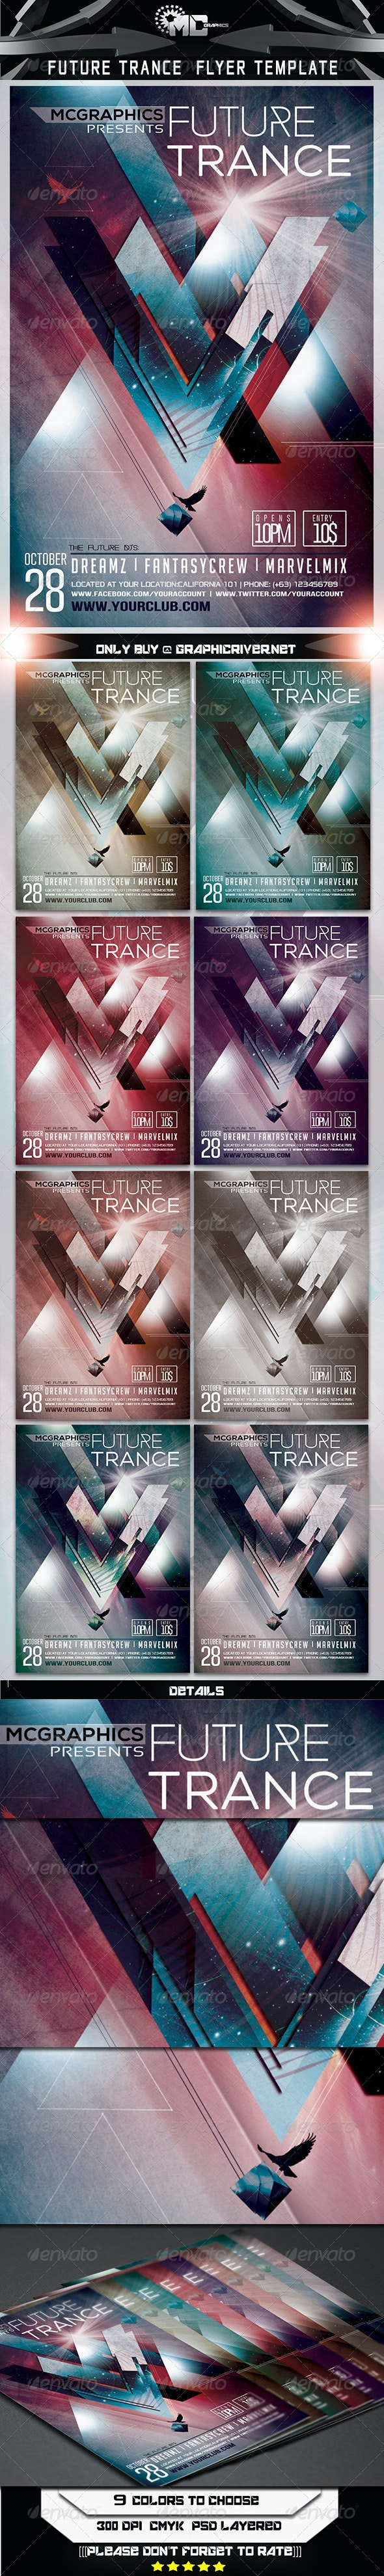 Future Trance Flyer Template - Clubs & Parties Events